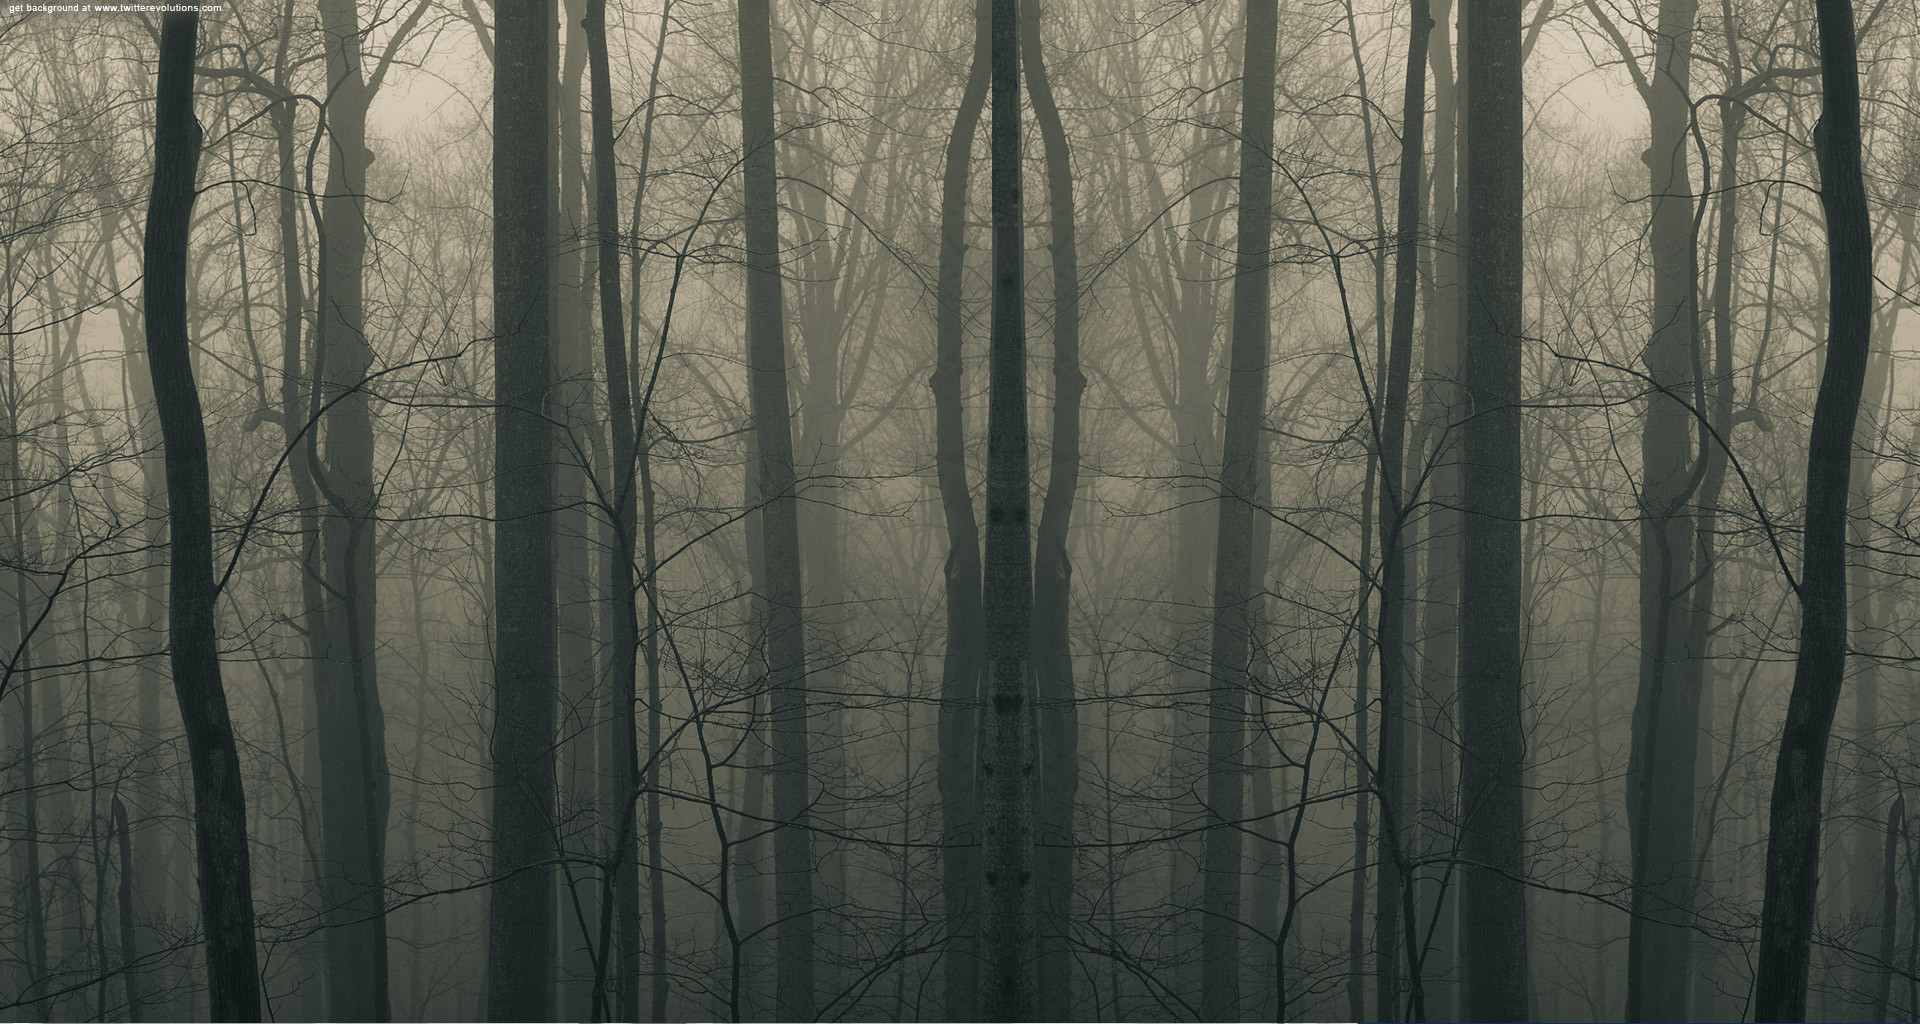 Creepy woods3